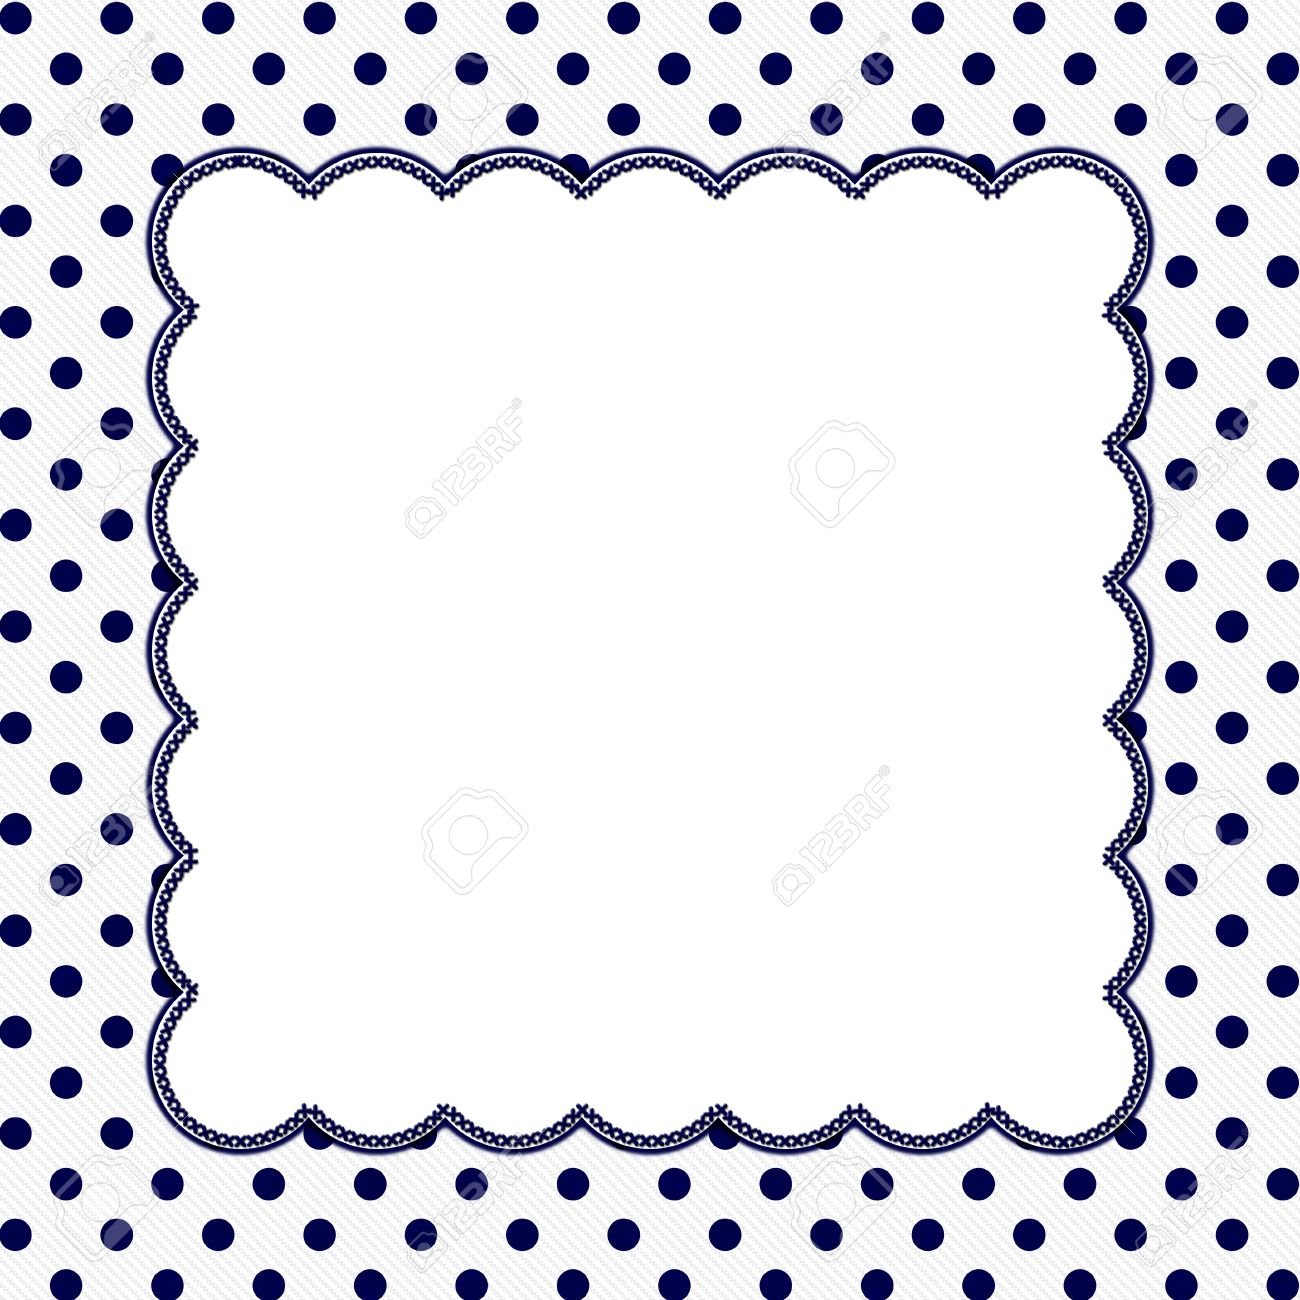 Navy Blue and White Polka Dot Frame with Embroidery Stitches